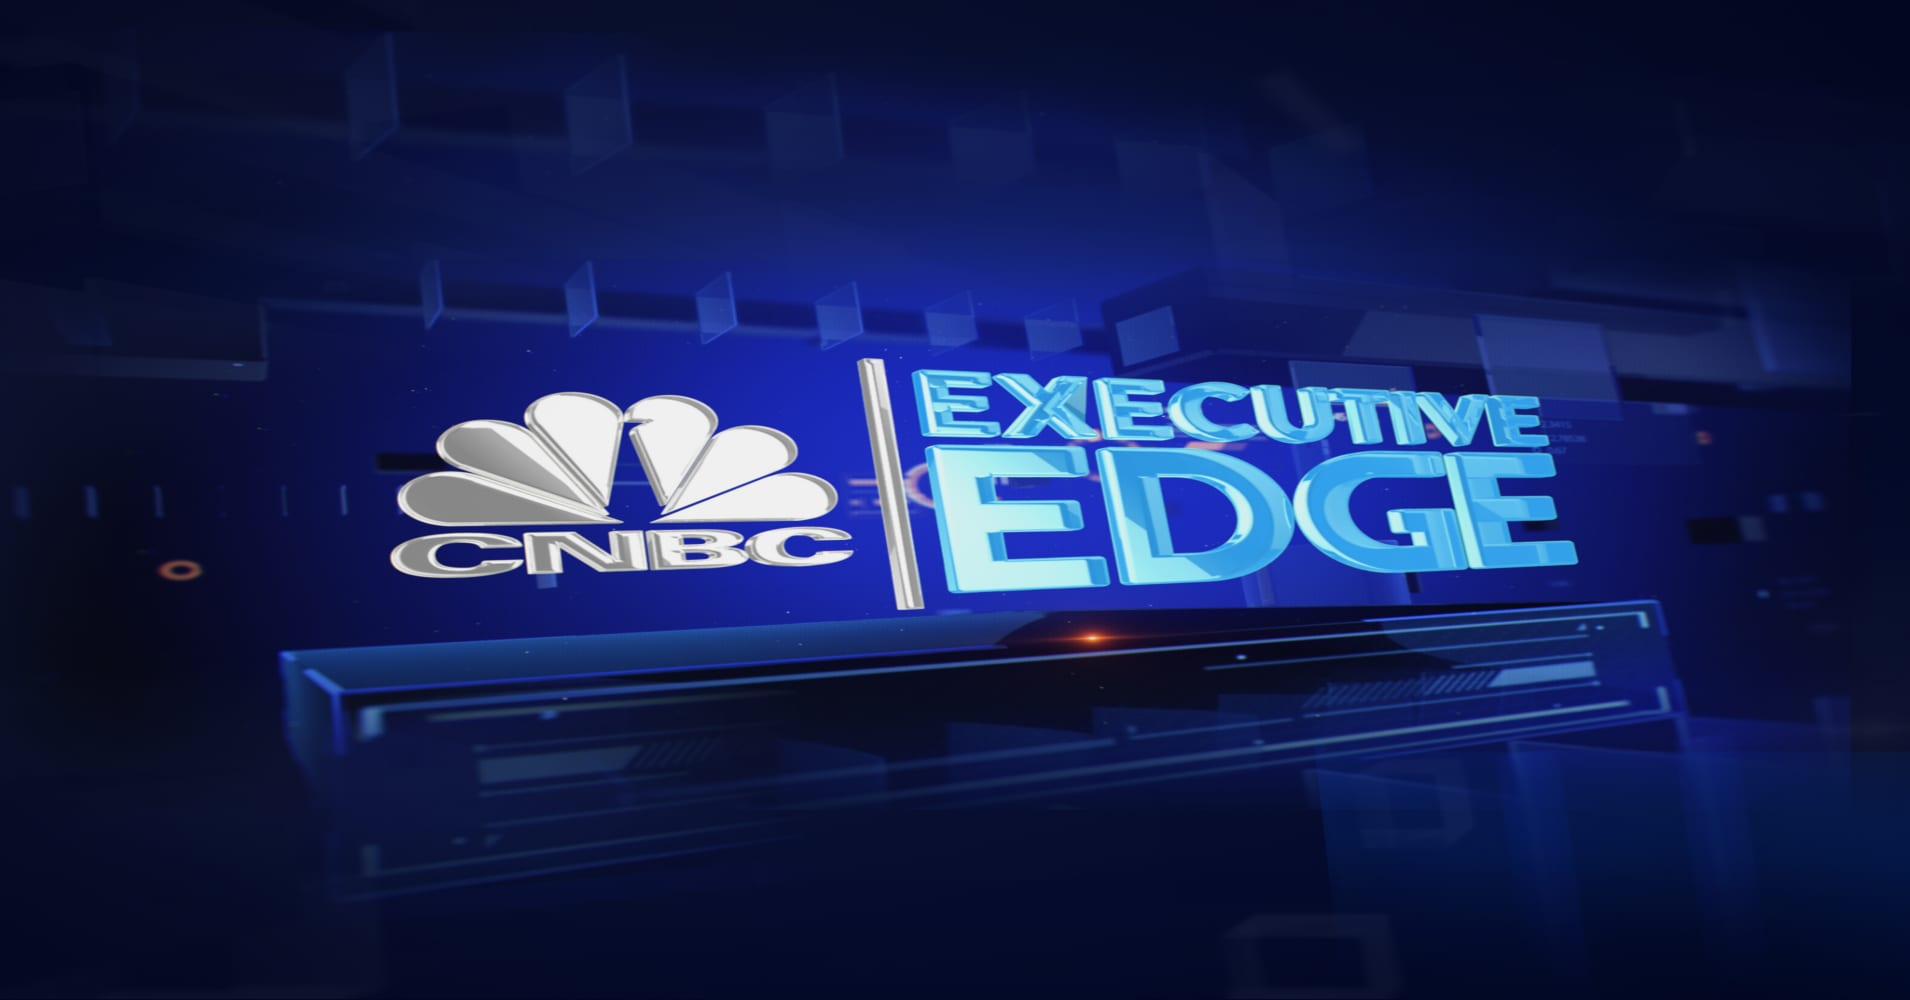 Executive Edge Investing and Business News